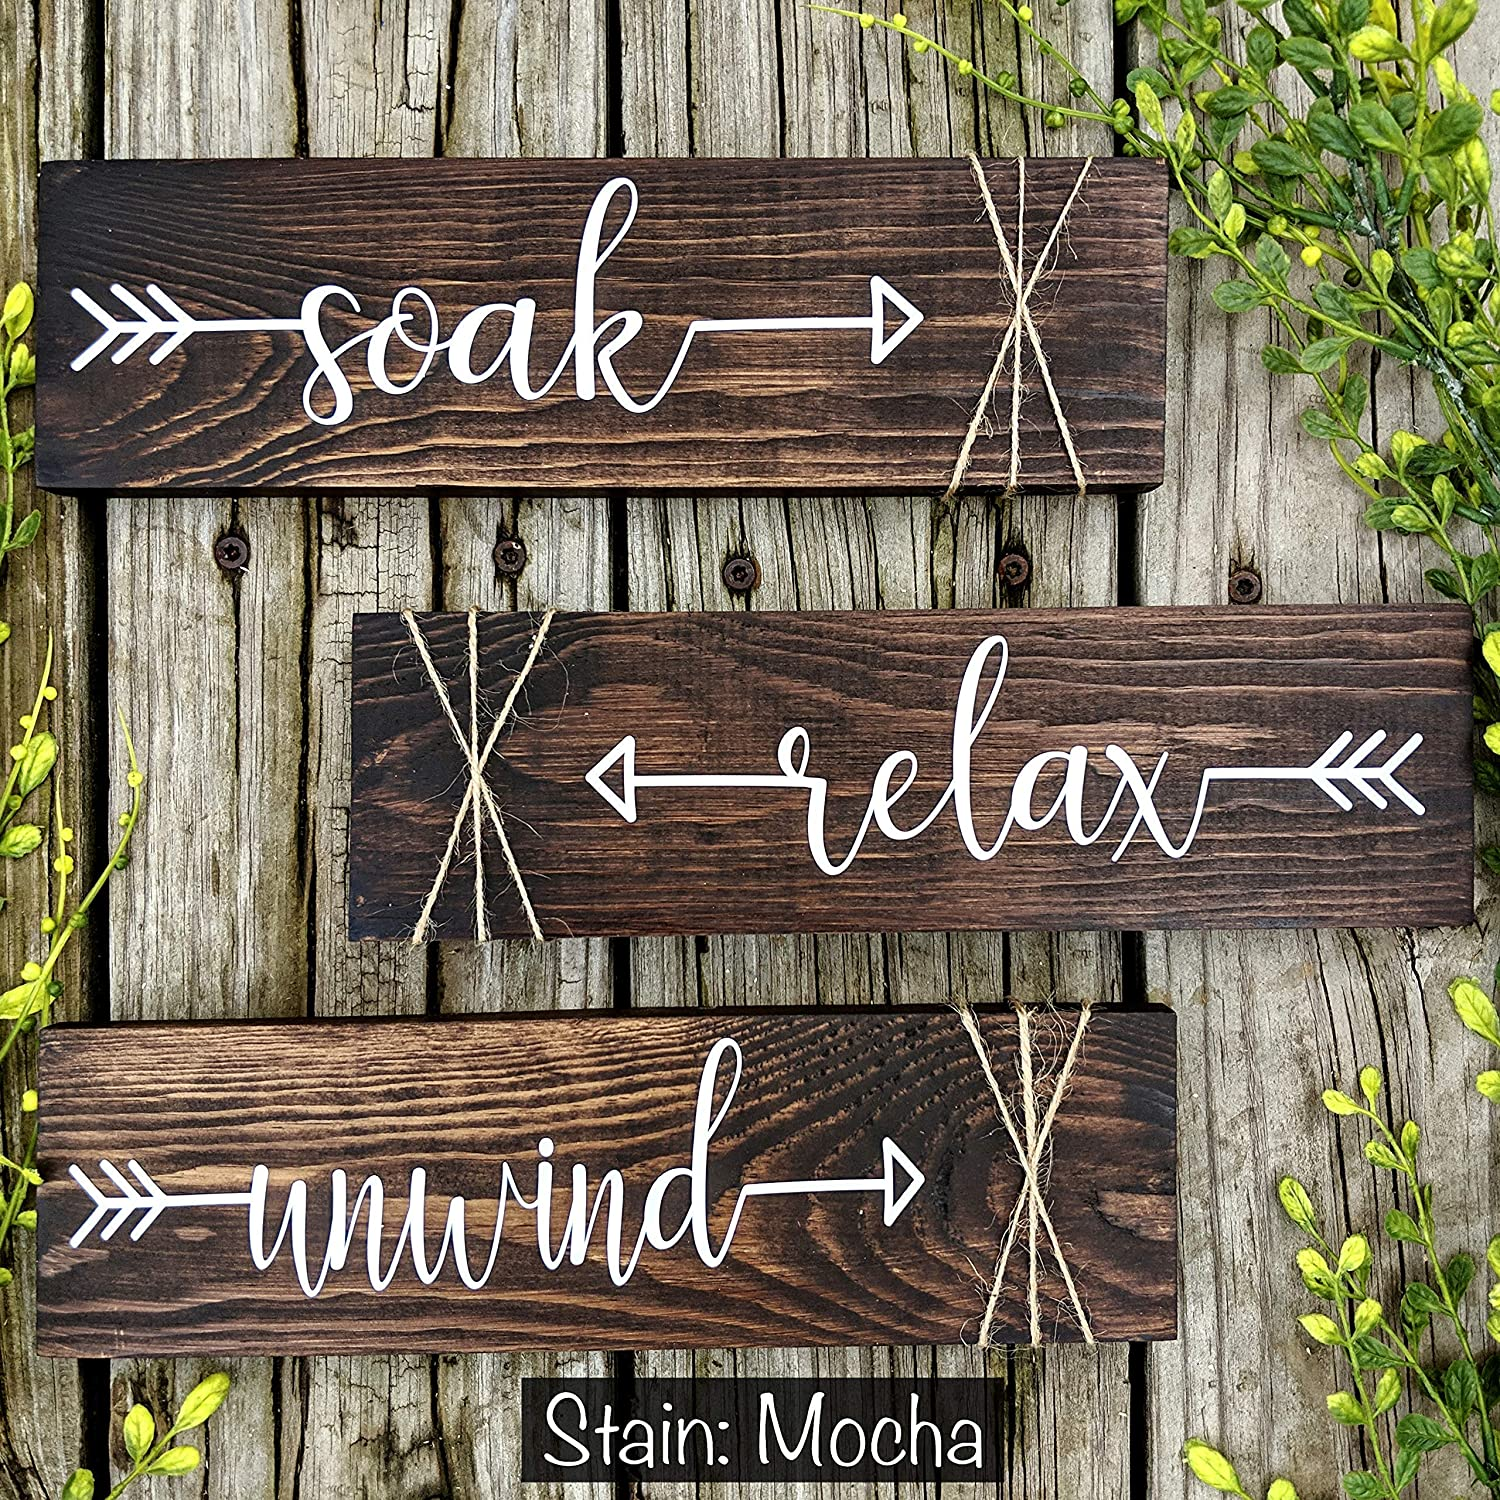 Farmhouse Rustic Bathroom Decor. Challenge the lowest price Soak Cheap mail order specialty store Unwind Relax of Set Signs.